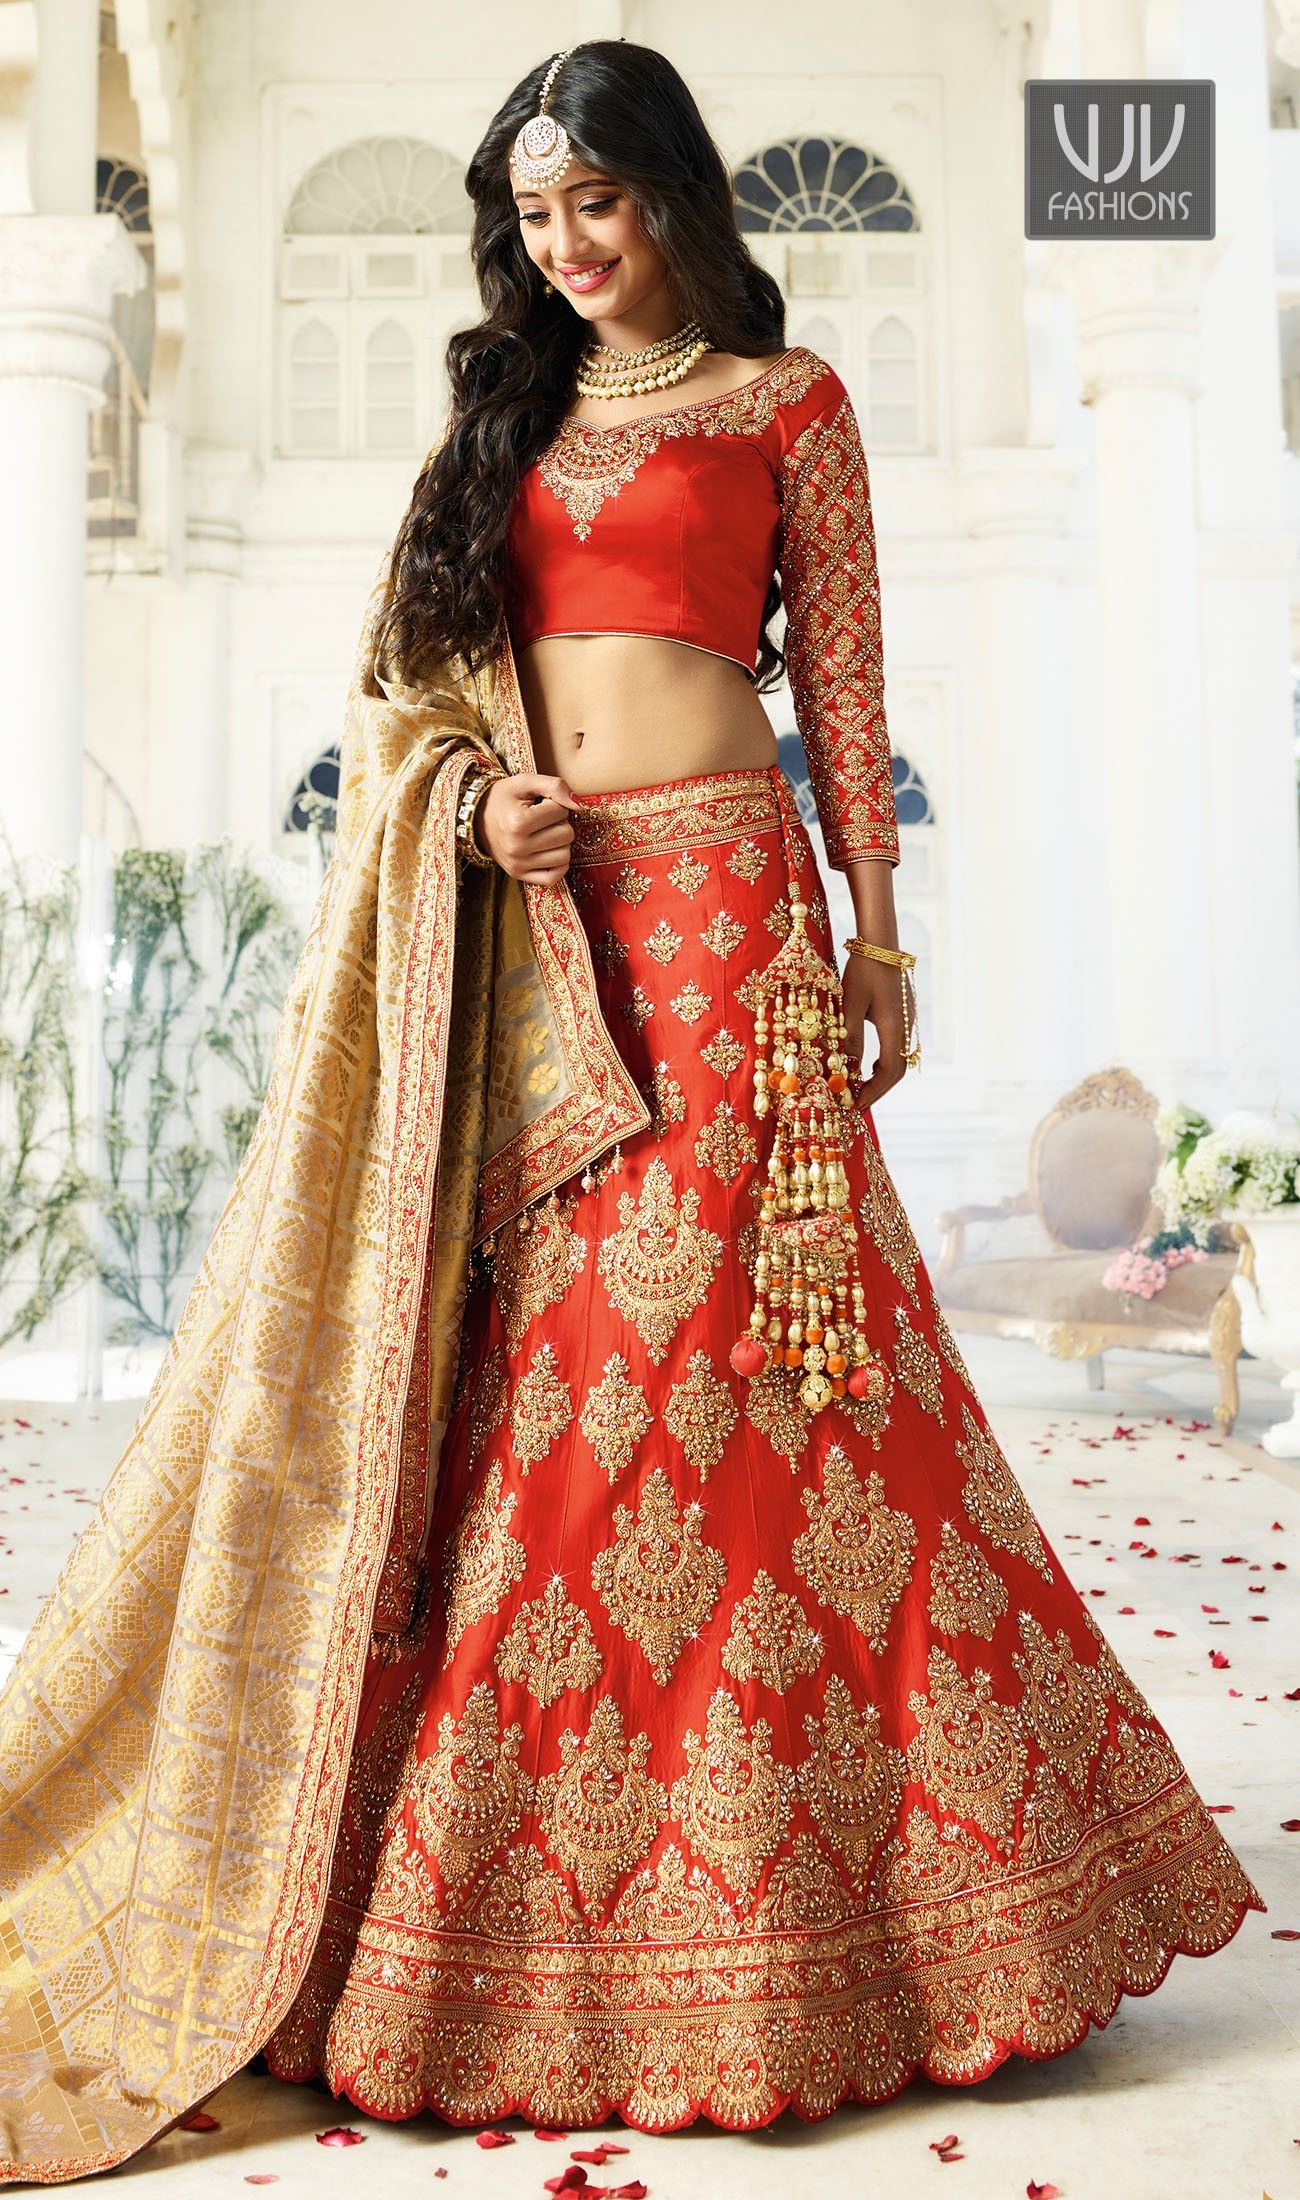 4d1ca0fc15 Shivangi Joshi Delightful Red Satin Designer Lehenga Choli Indian Wedding  Outfits, Wedding Attire, Indian